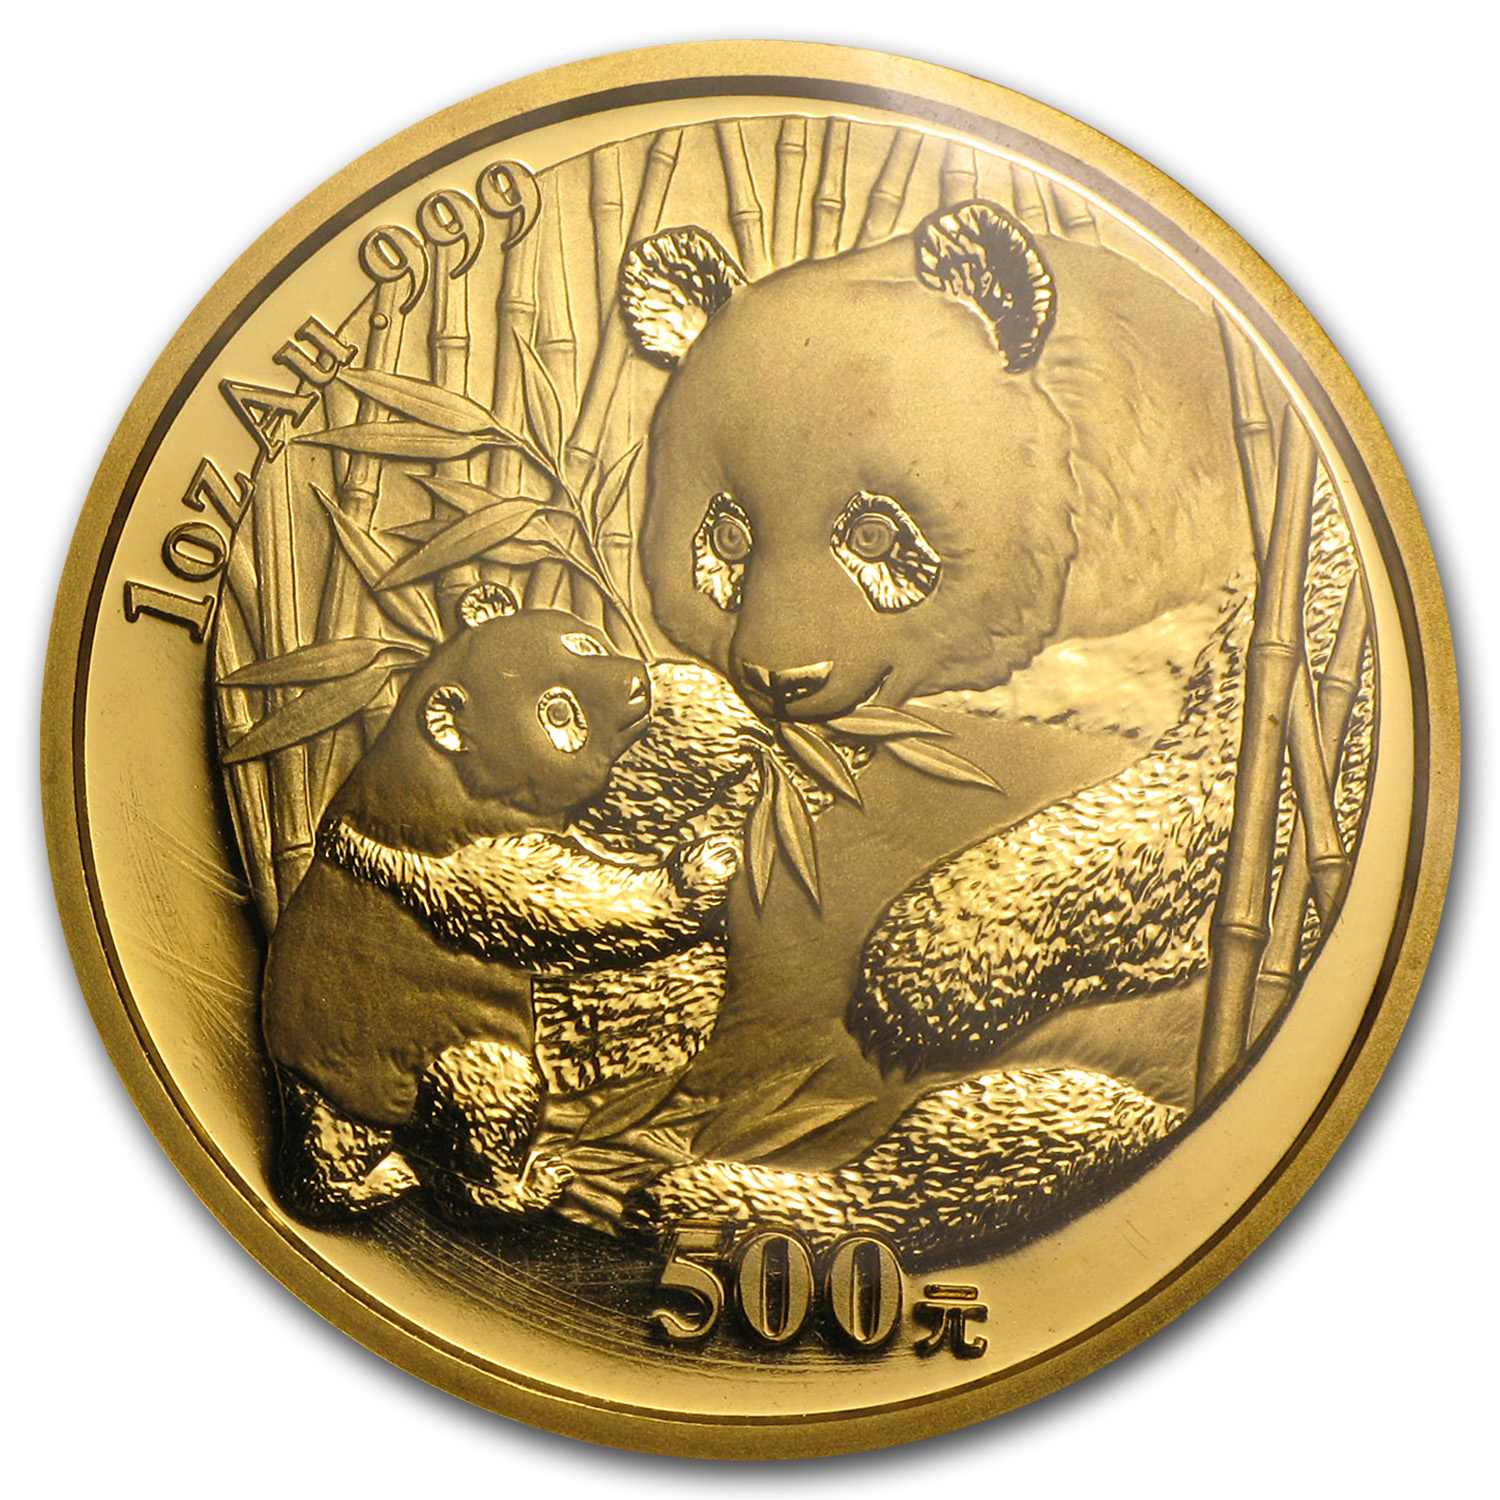 2005 1 oz Gold Chinese Panda (Sealed)